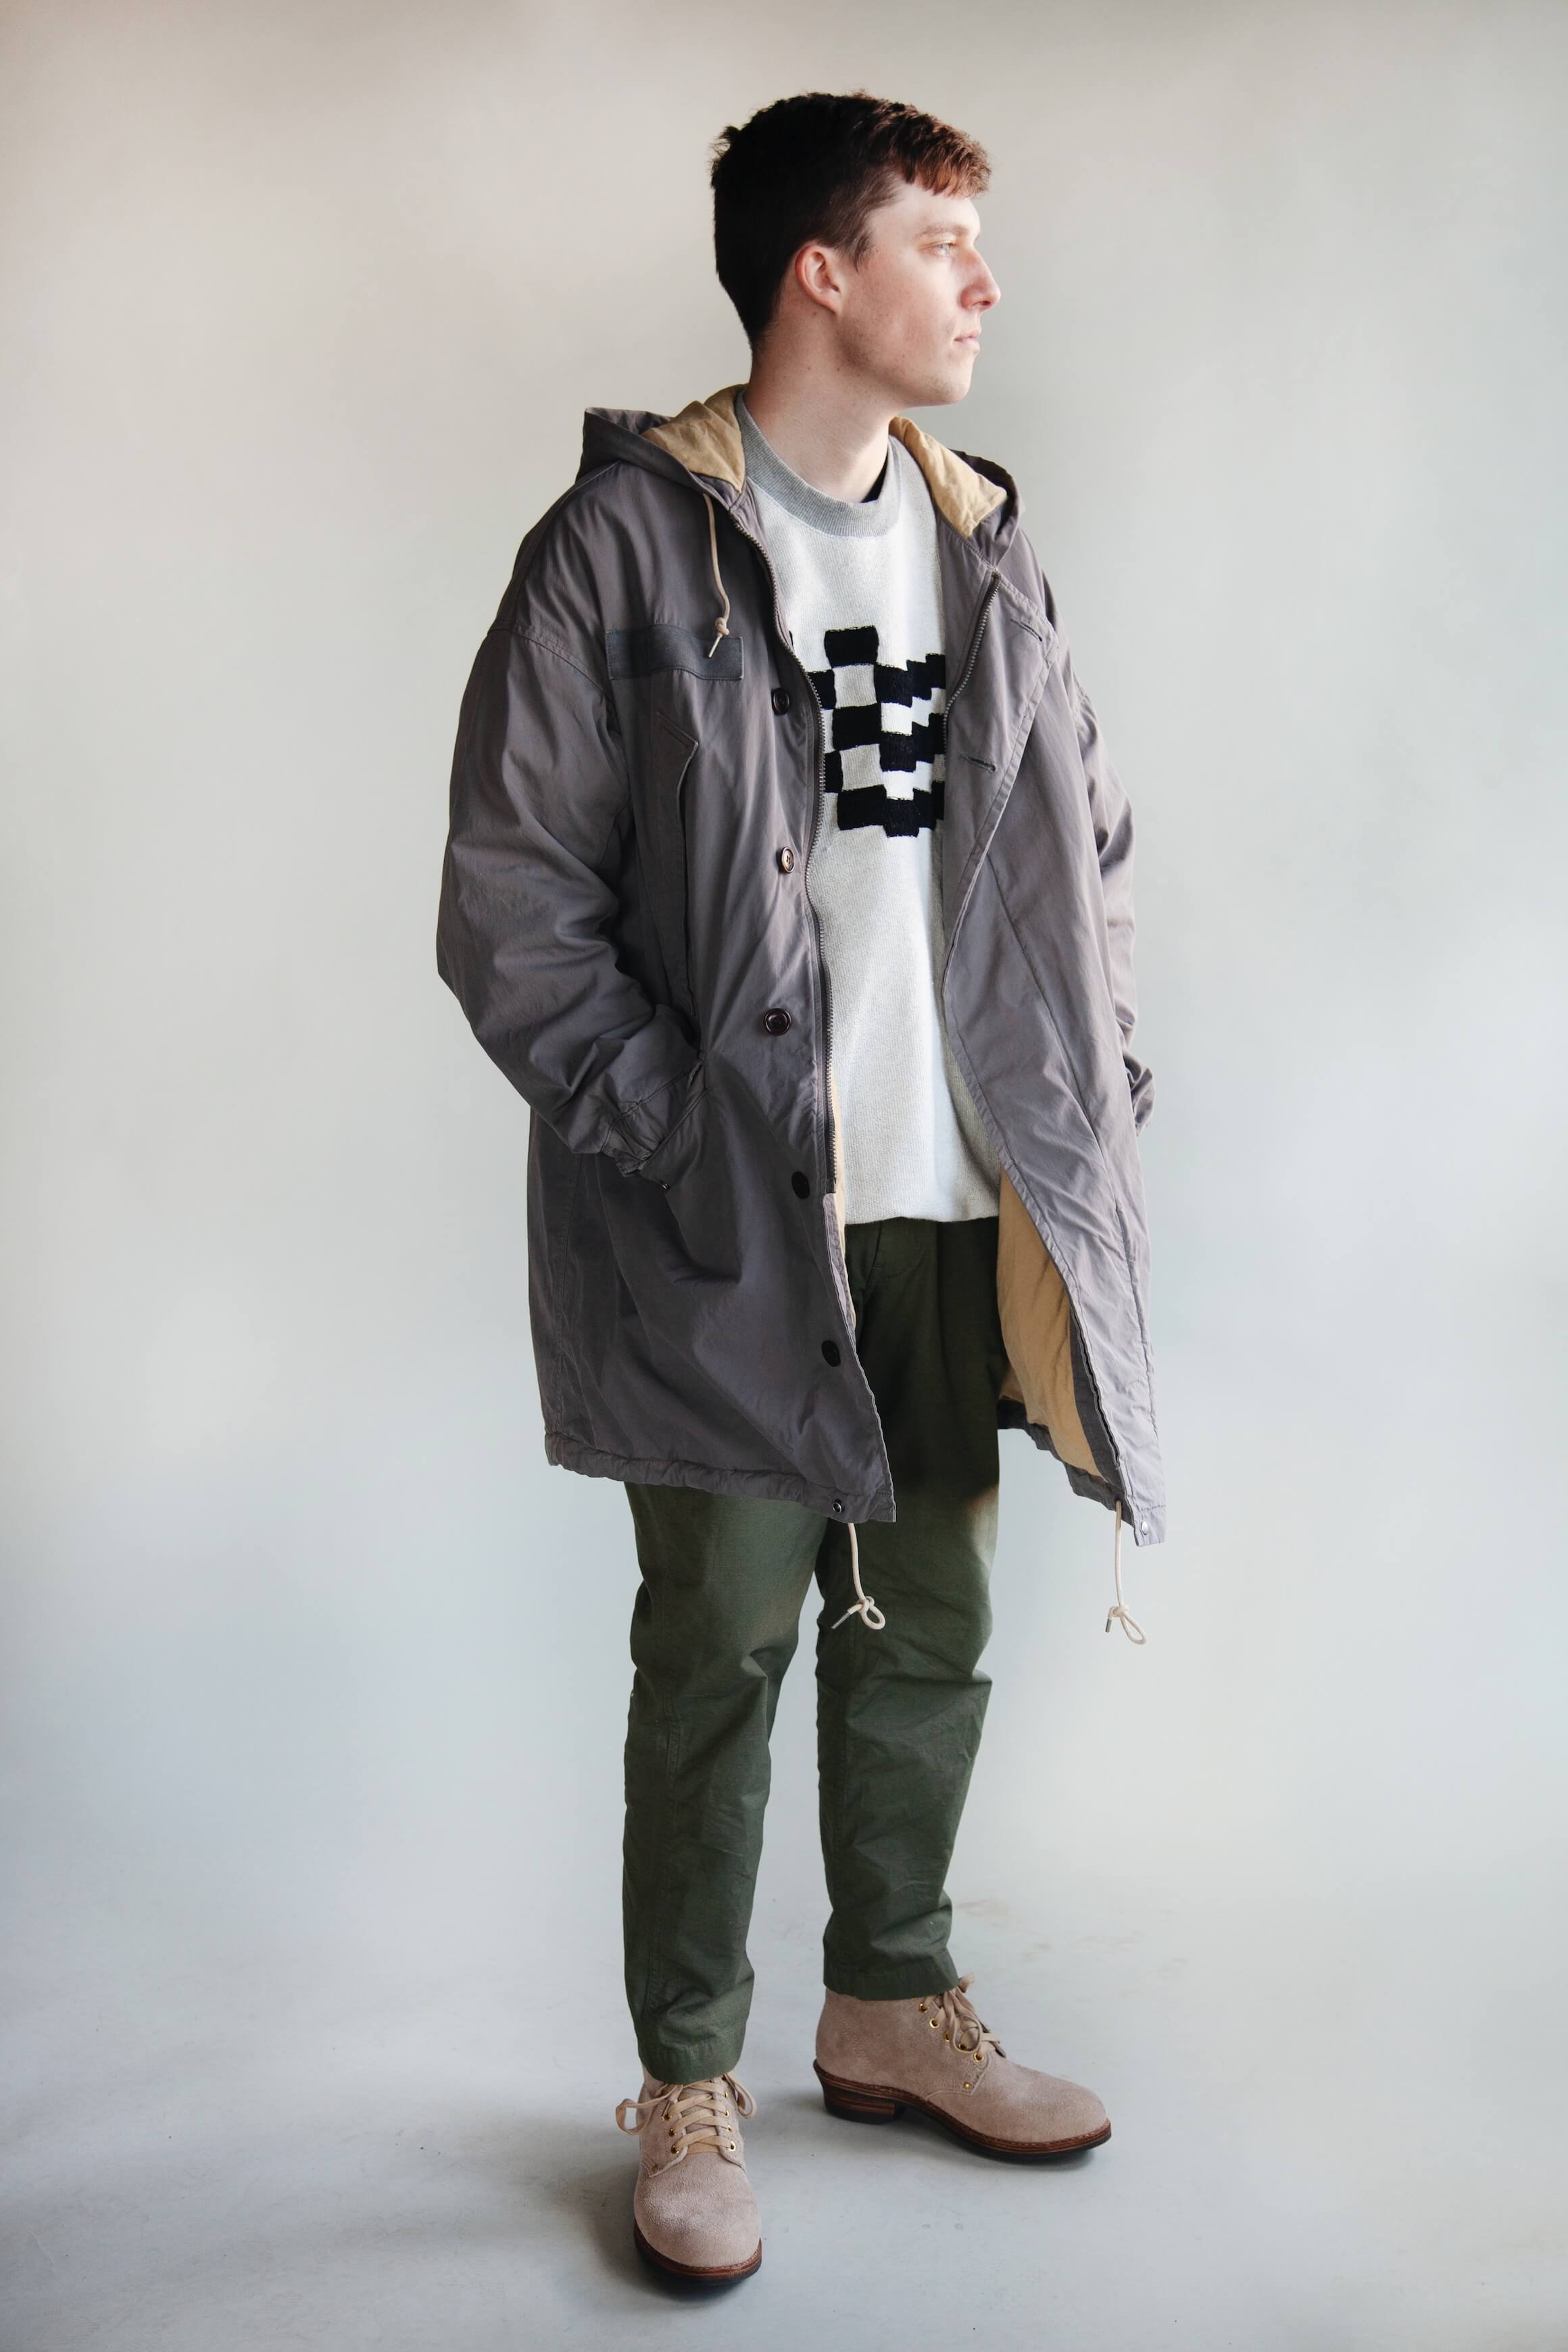 visvim patterson overcoat, checkered embroidered sweatshirt from noma td, orslow new yorker pants and visvim brigadier boots on body